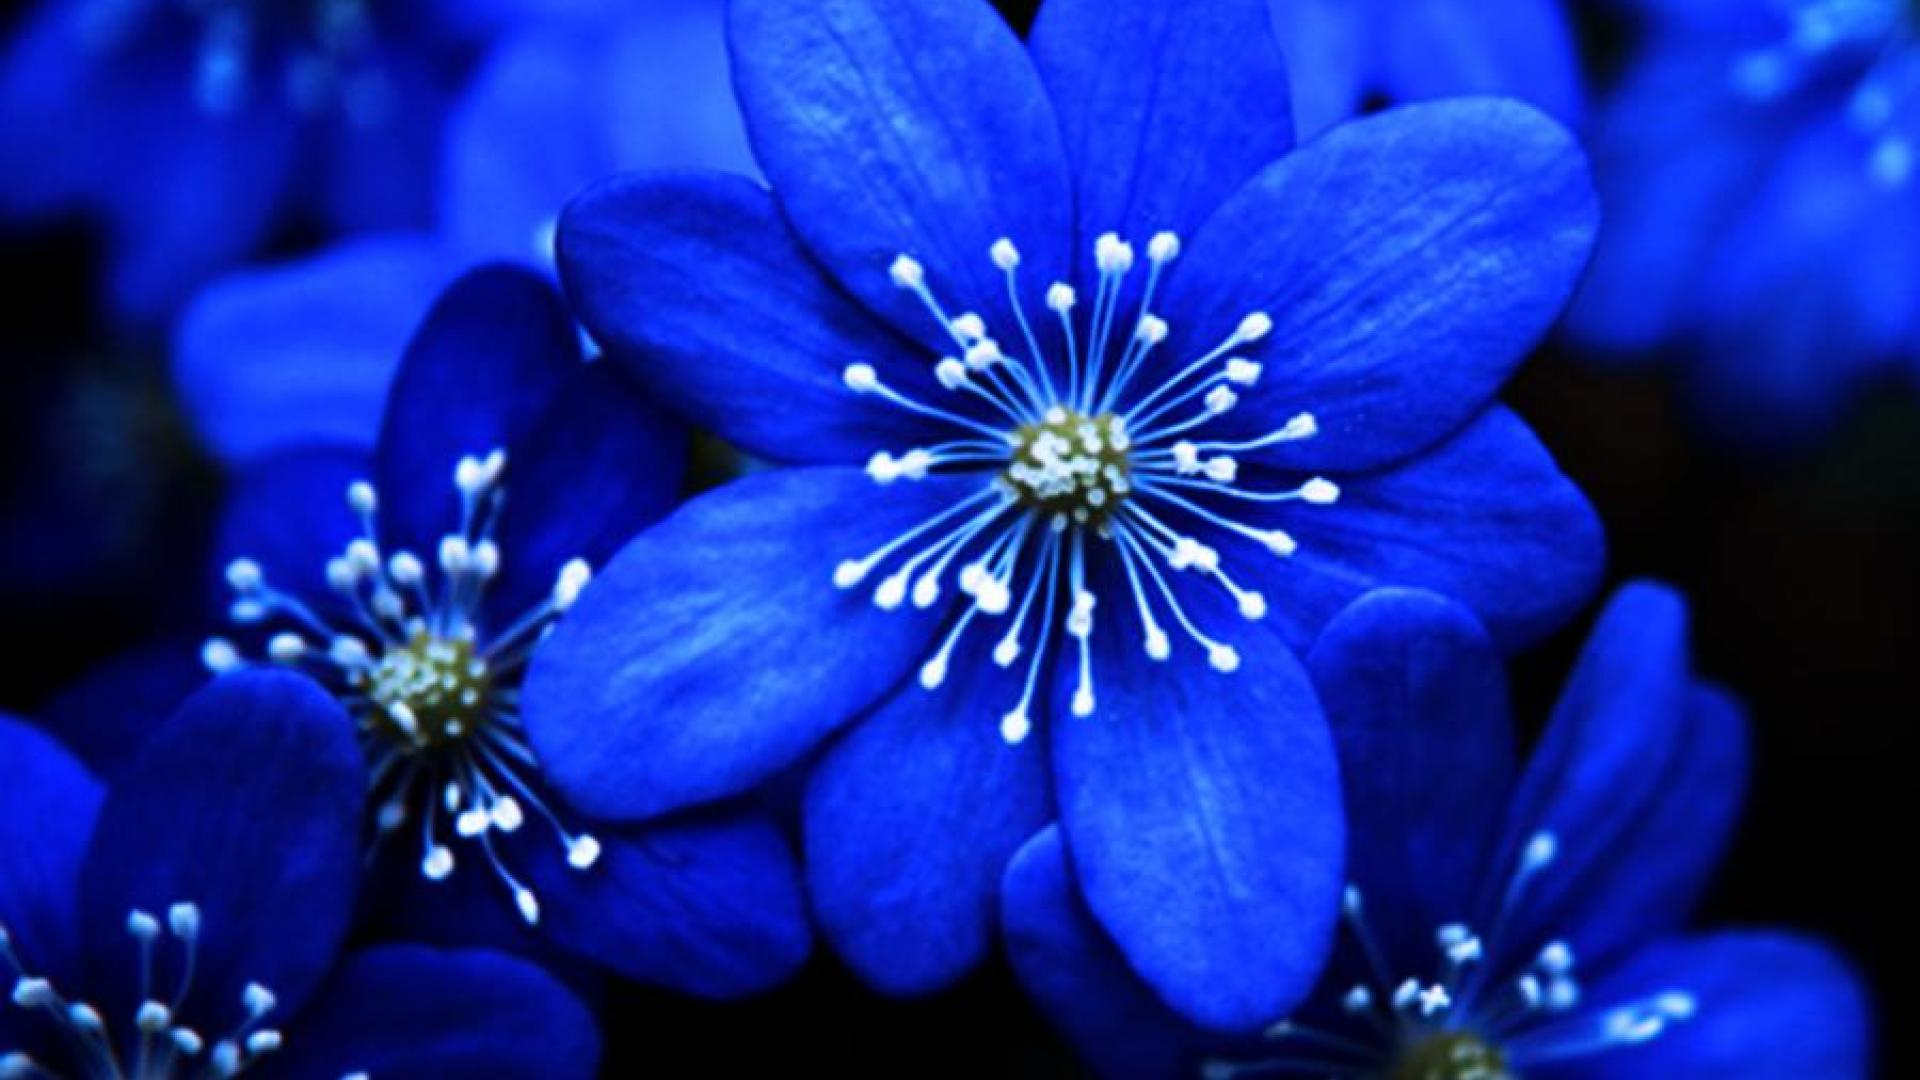 Free Download Blue Flowers Wallpaper 1920x1080 39948